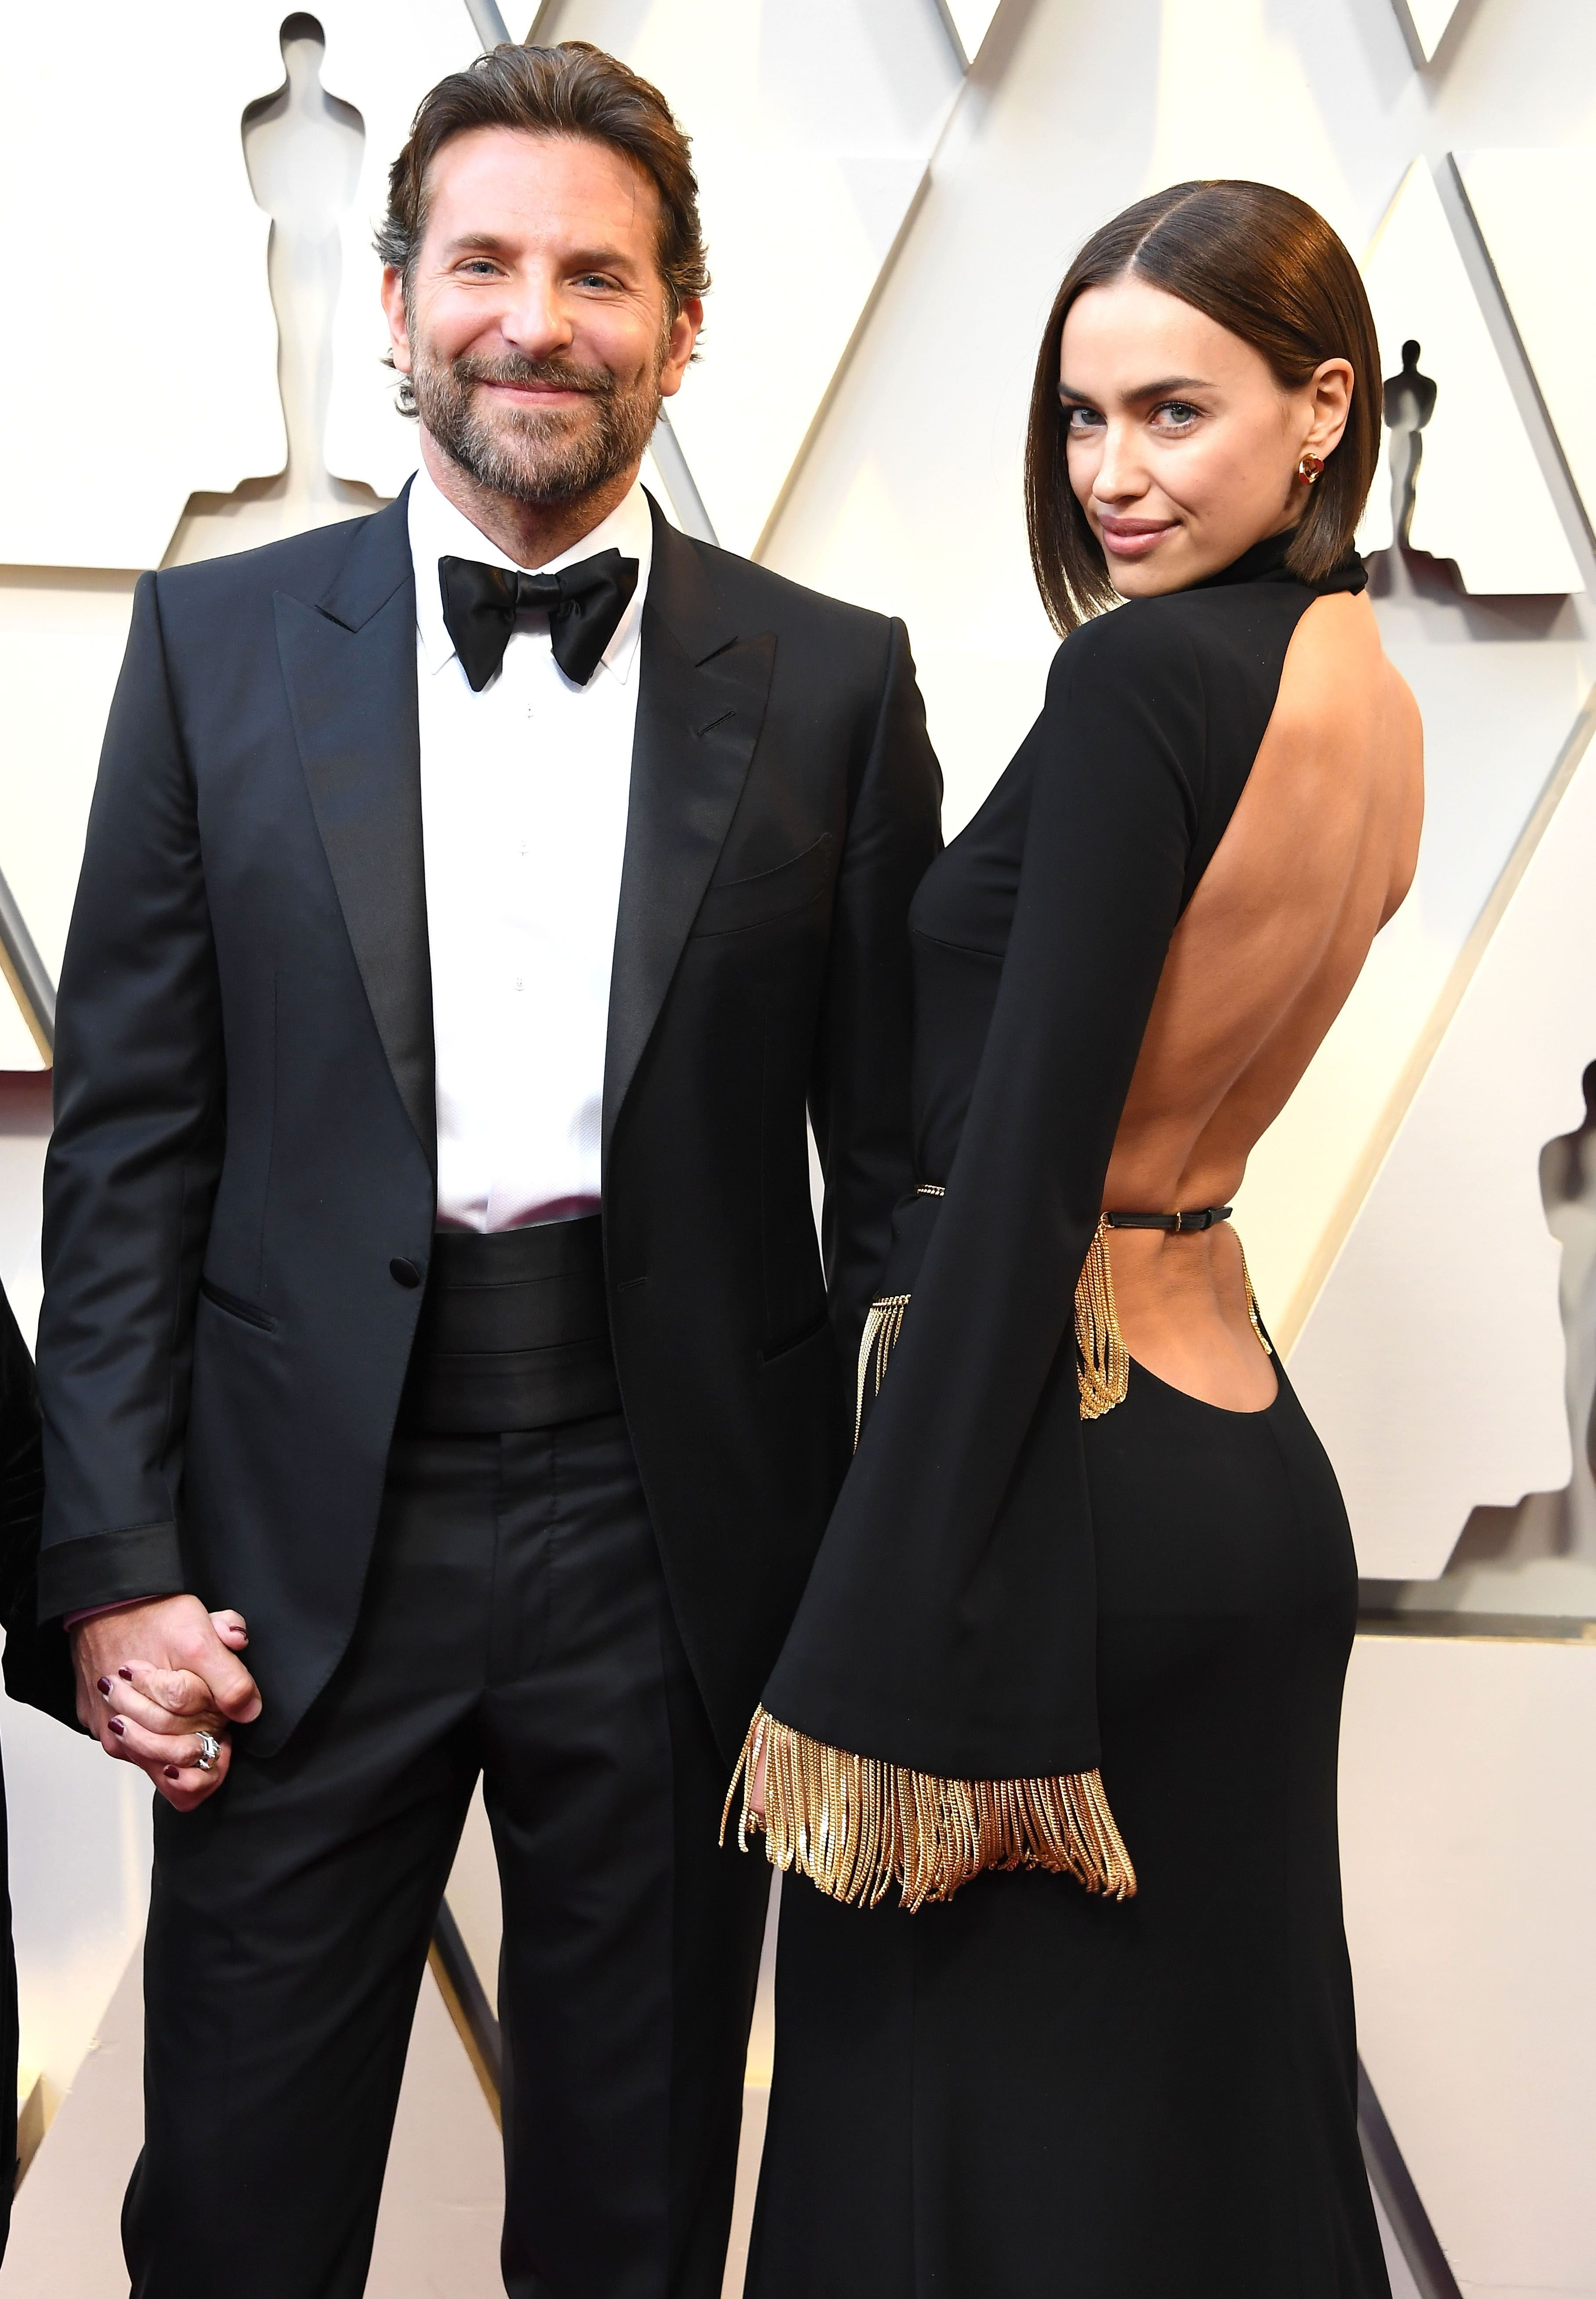 Bradley Cooper and Irina Shayk at the 91st Annual Academy Awards at Hollywood and Highland on February 24, 2019 in Hollywood, California.   Source: Getty Images